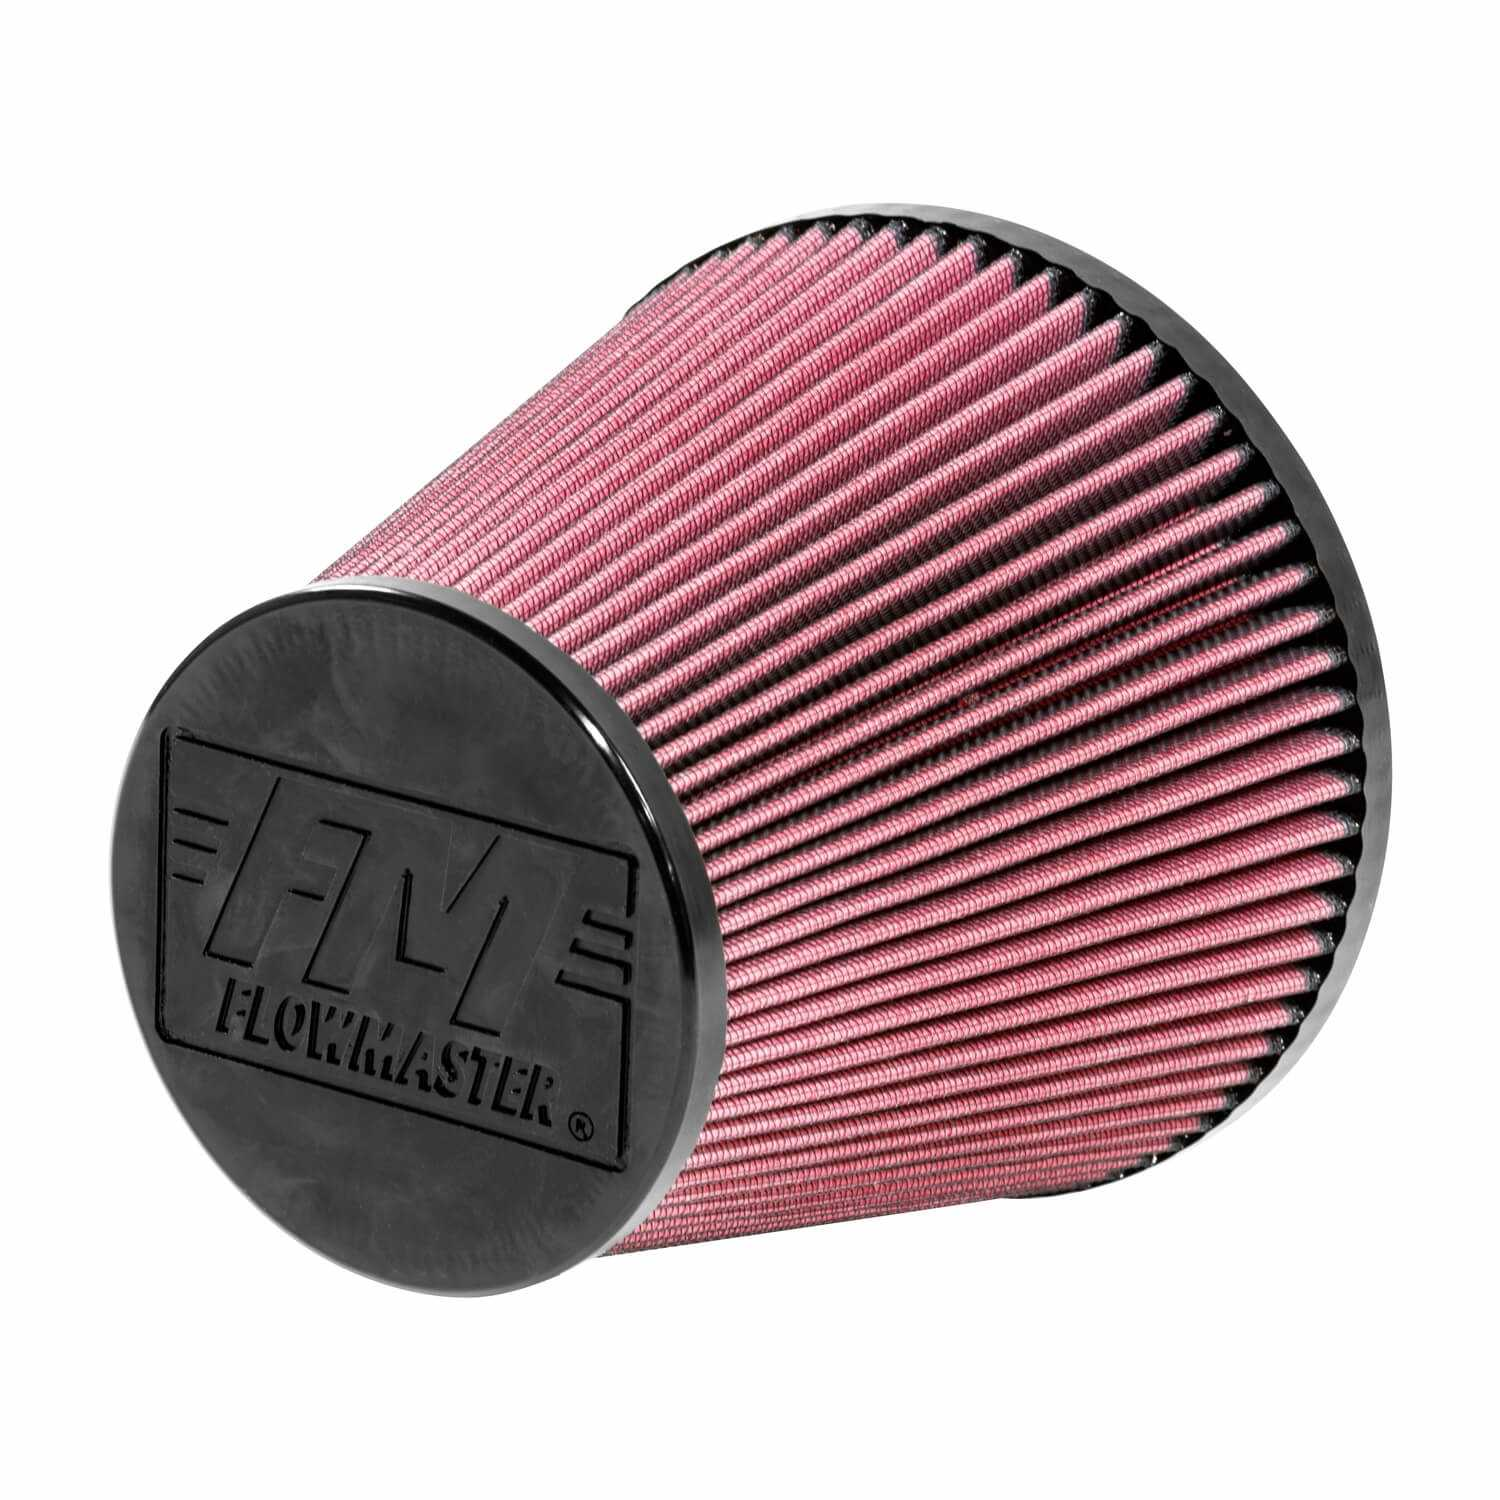 615011 Flowmaster Delta Force®Cold Air Intake Filter